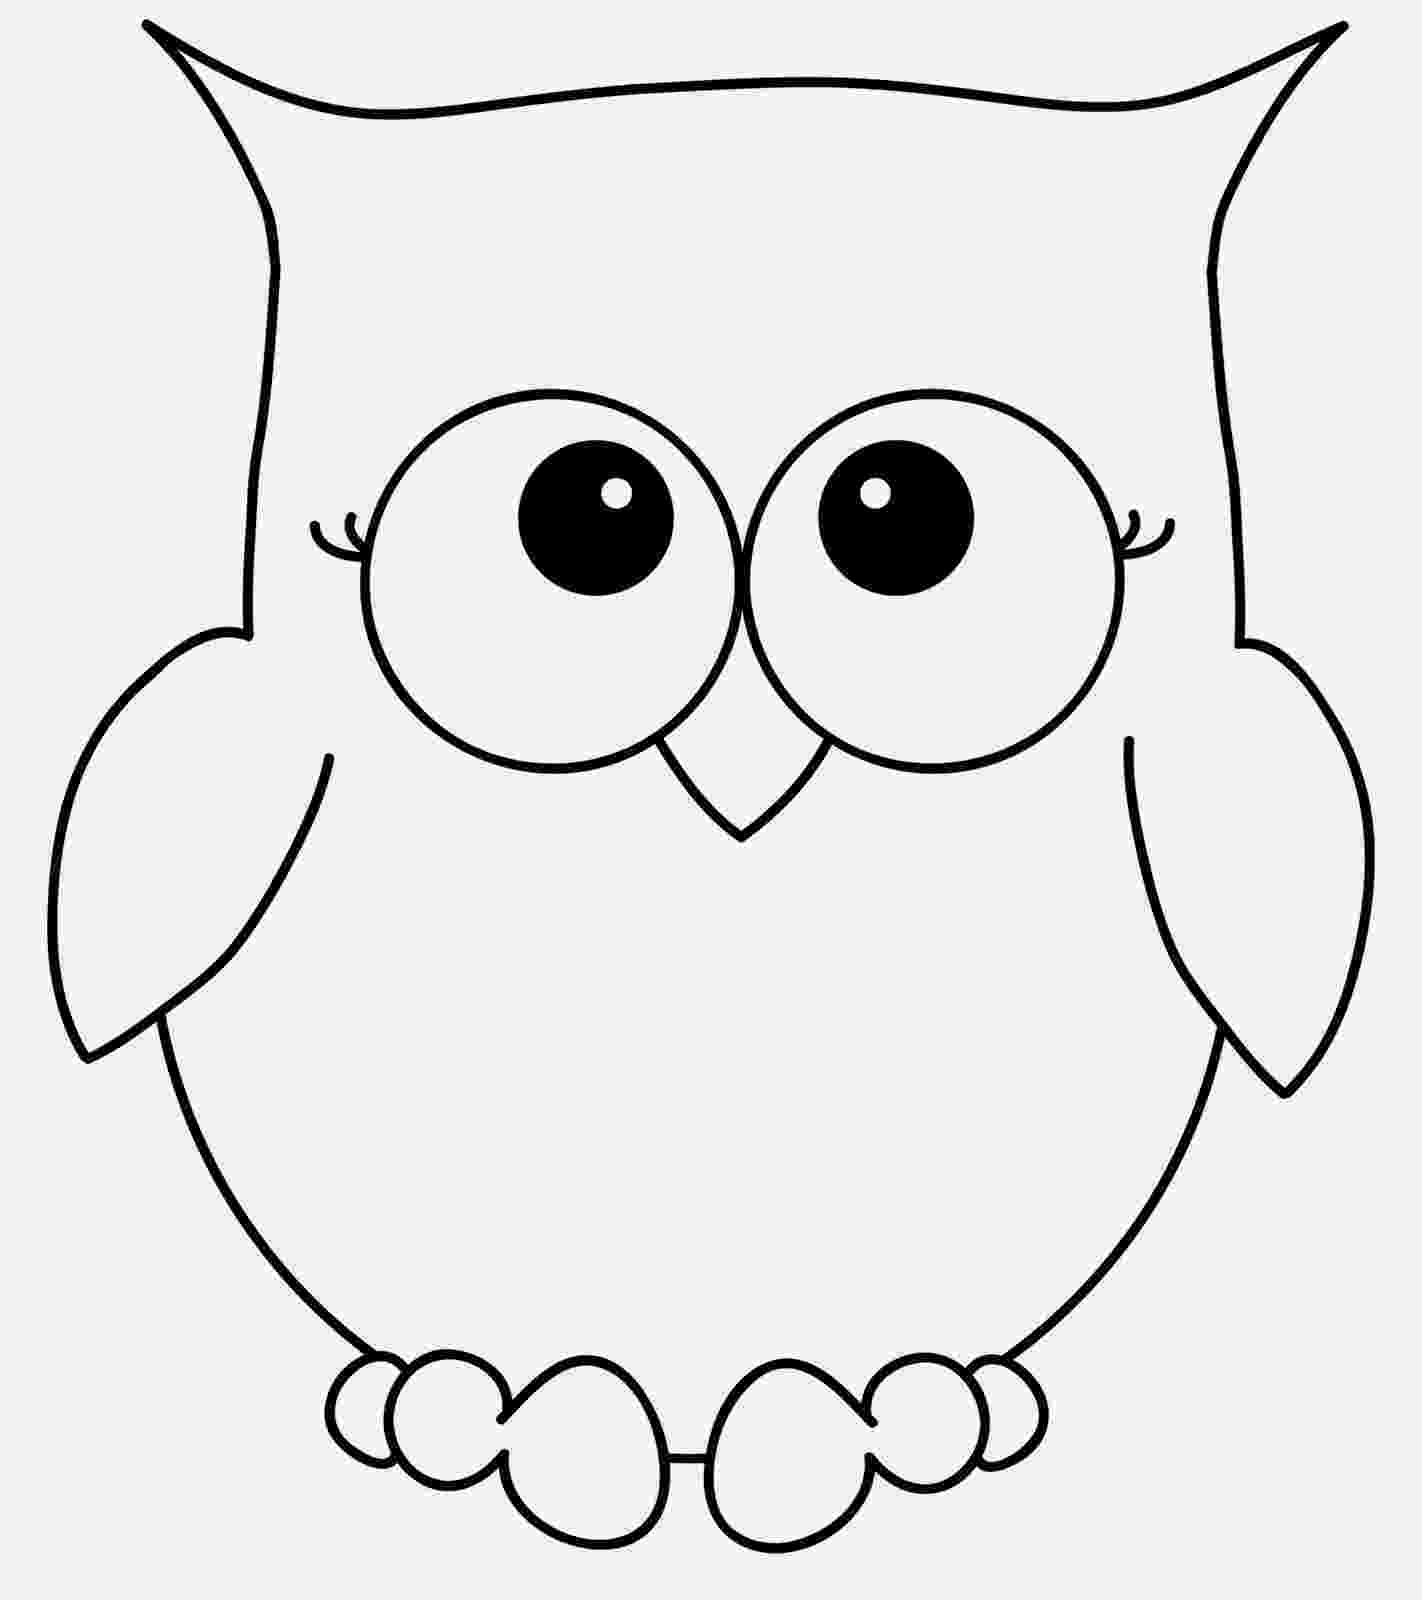 owl color sheet owl coloring pages for adults free detailed owl coloring owl sheet color